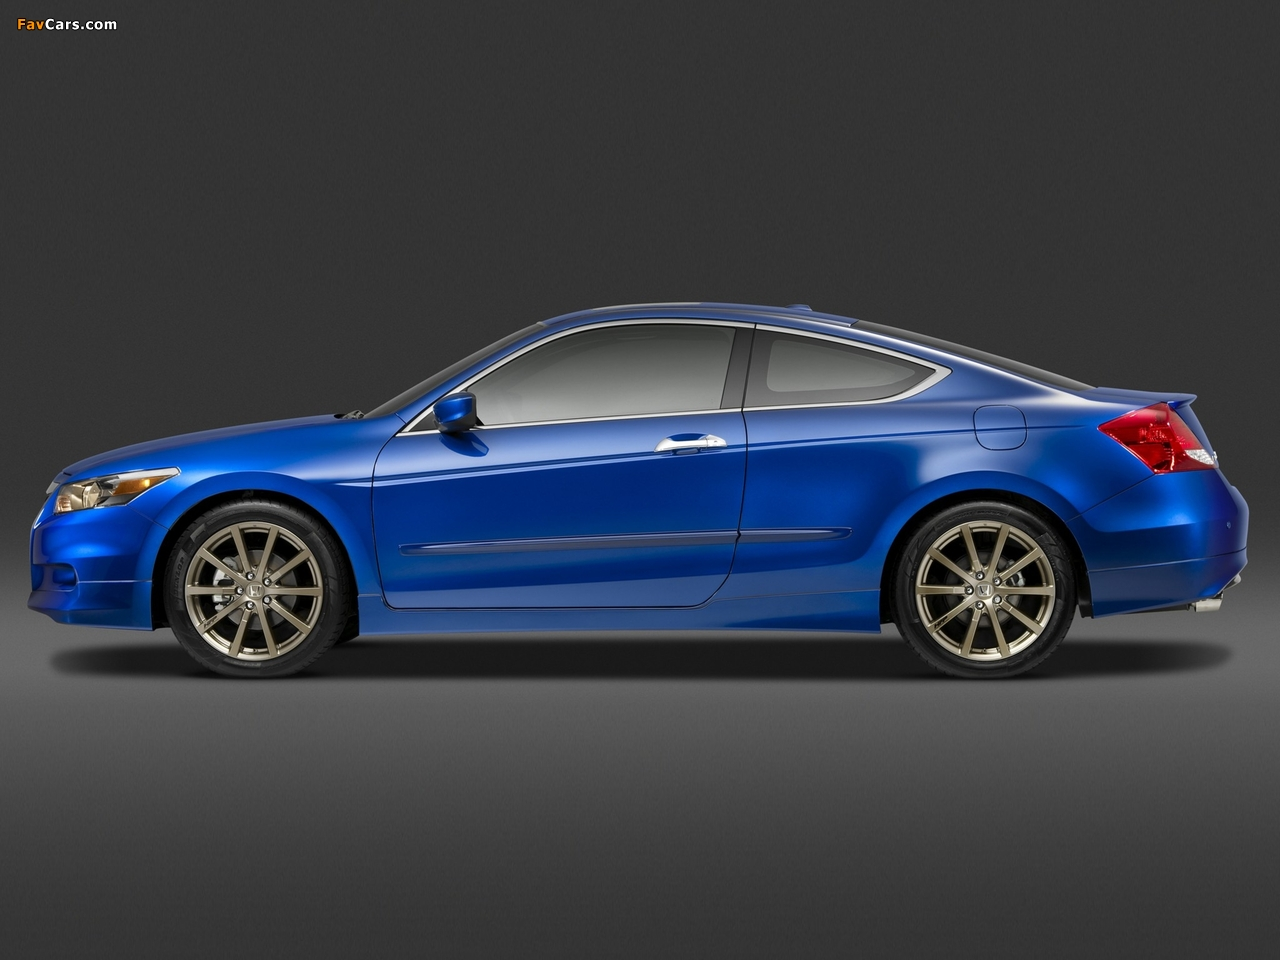 Pictures Of Honda Accord Coupe Hfp Package 2010 12 1280x960